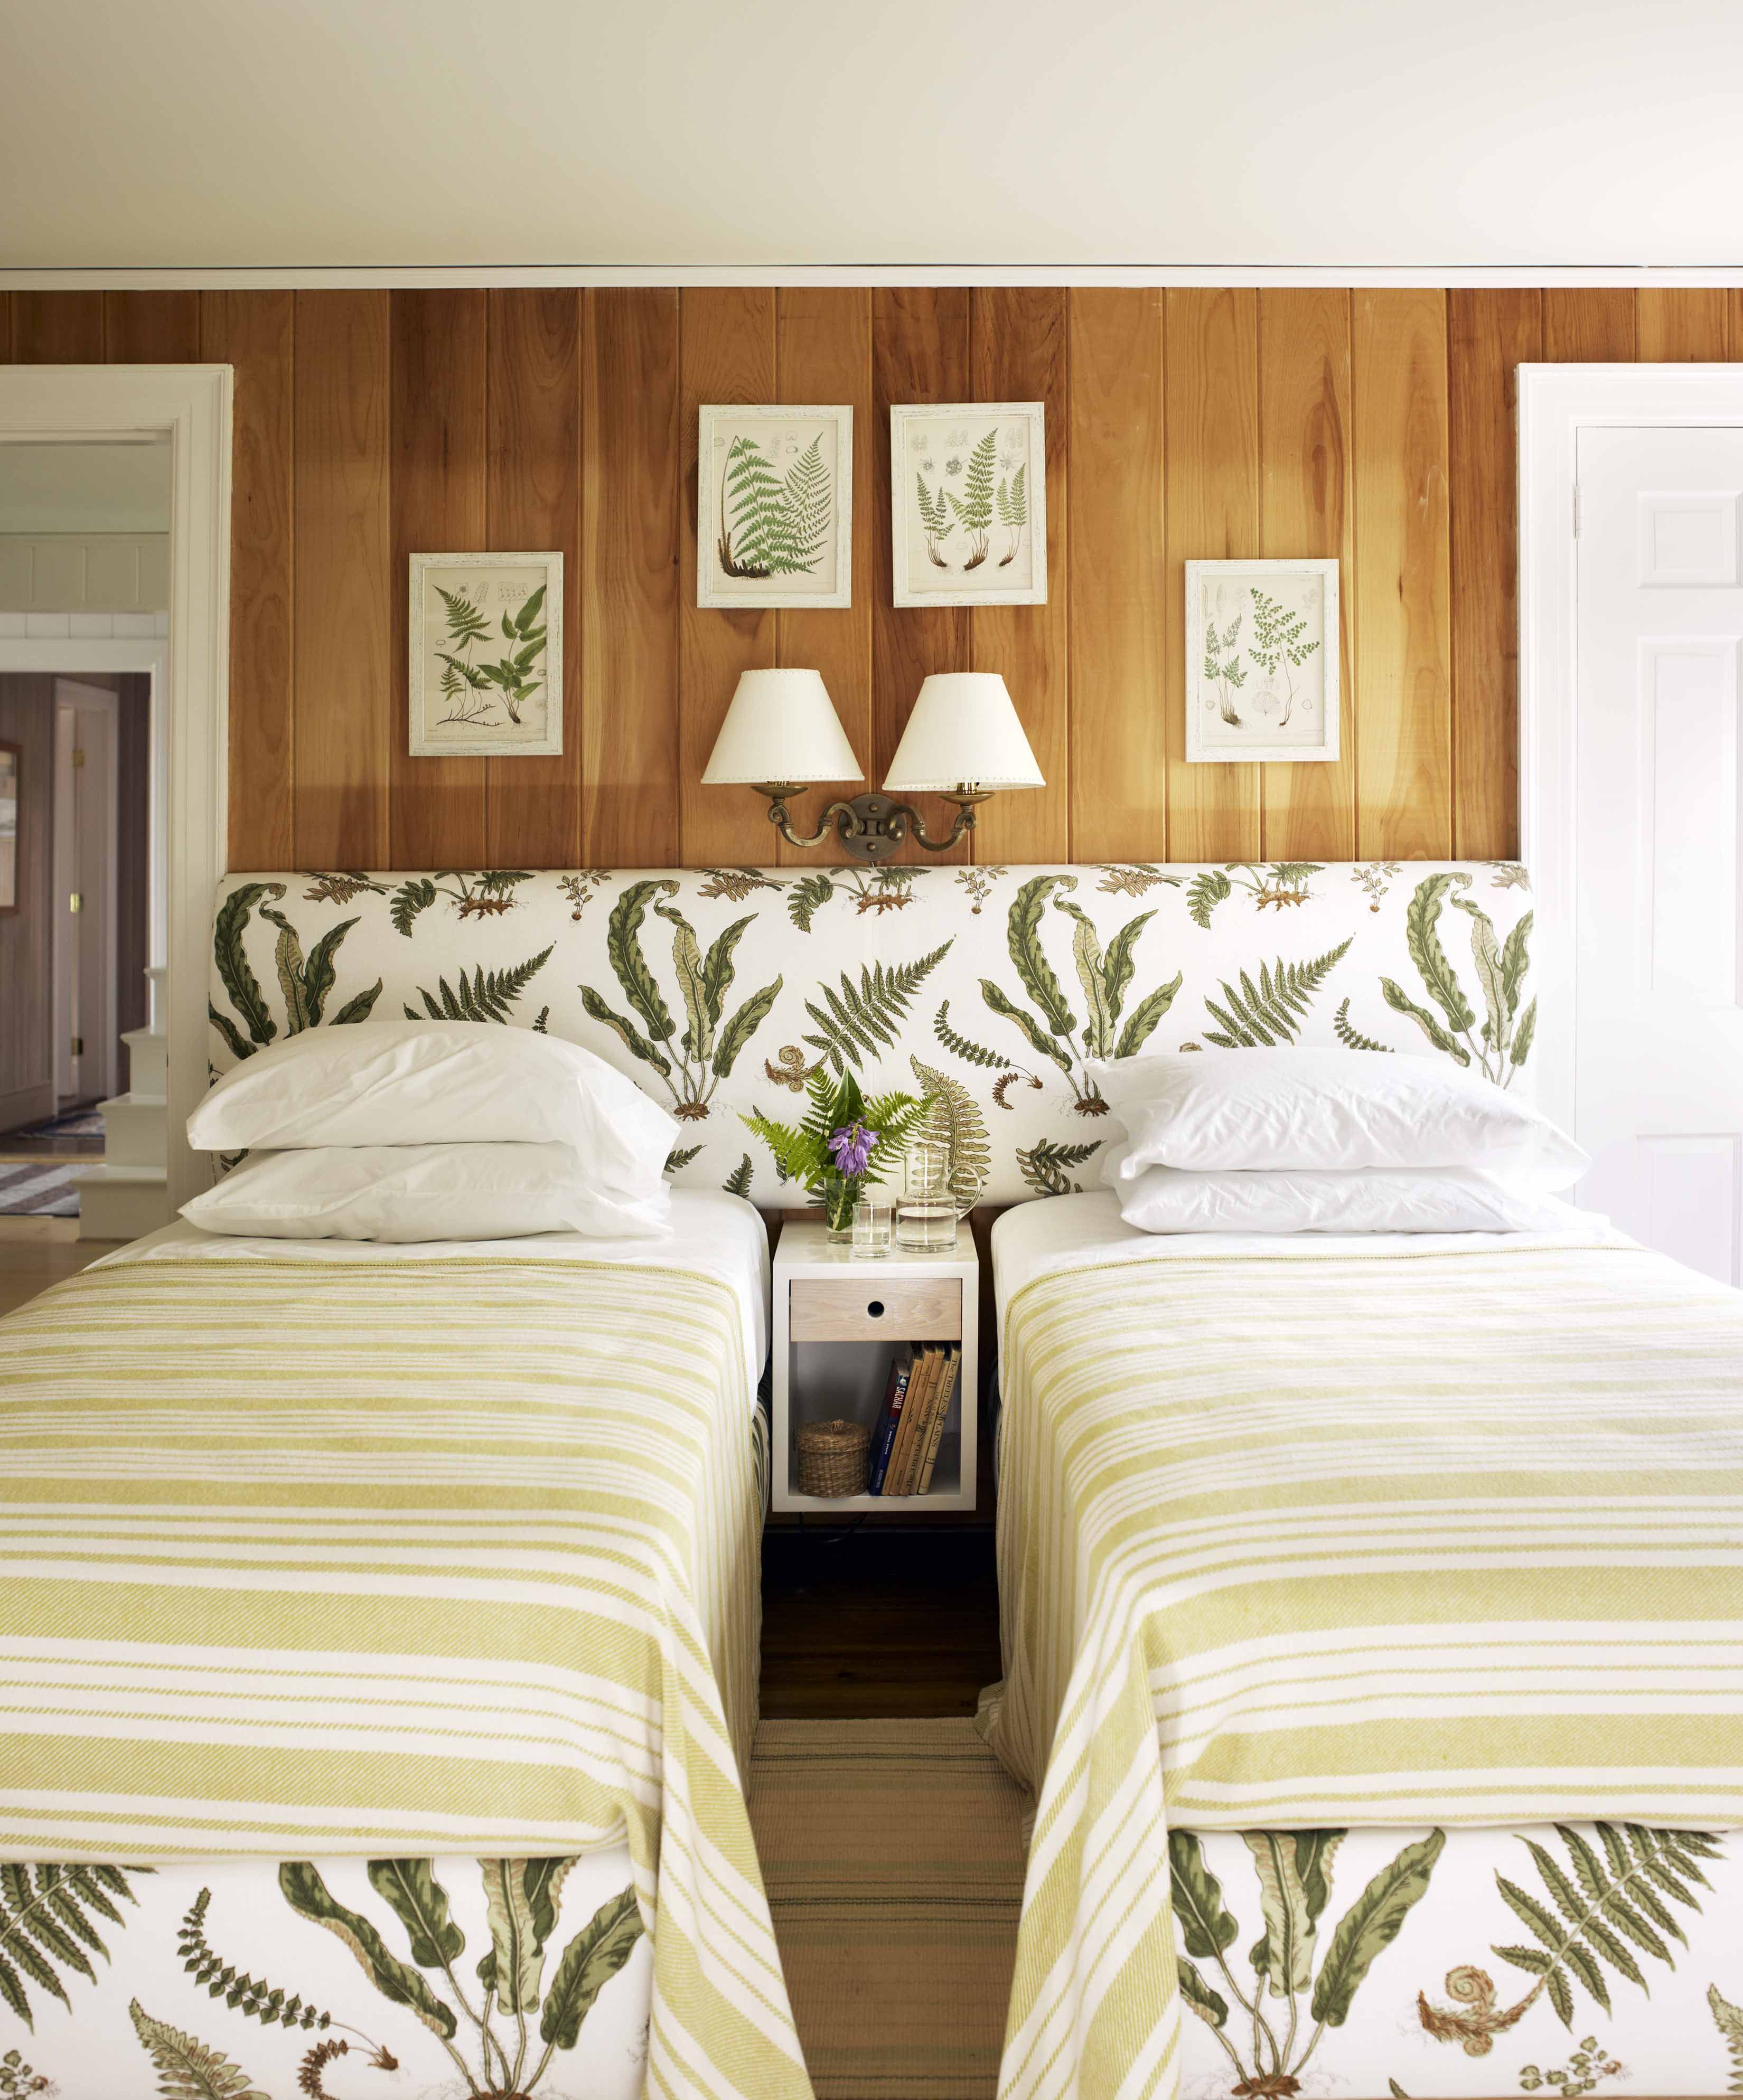 Twin bedding guest room - Channeling Spring Botanicals With Our Les Fougeres Print Design By Tom Scheerer Schustagram